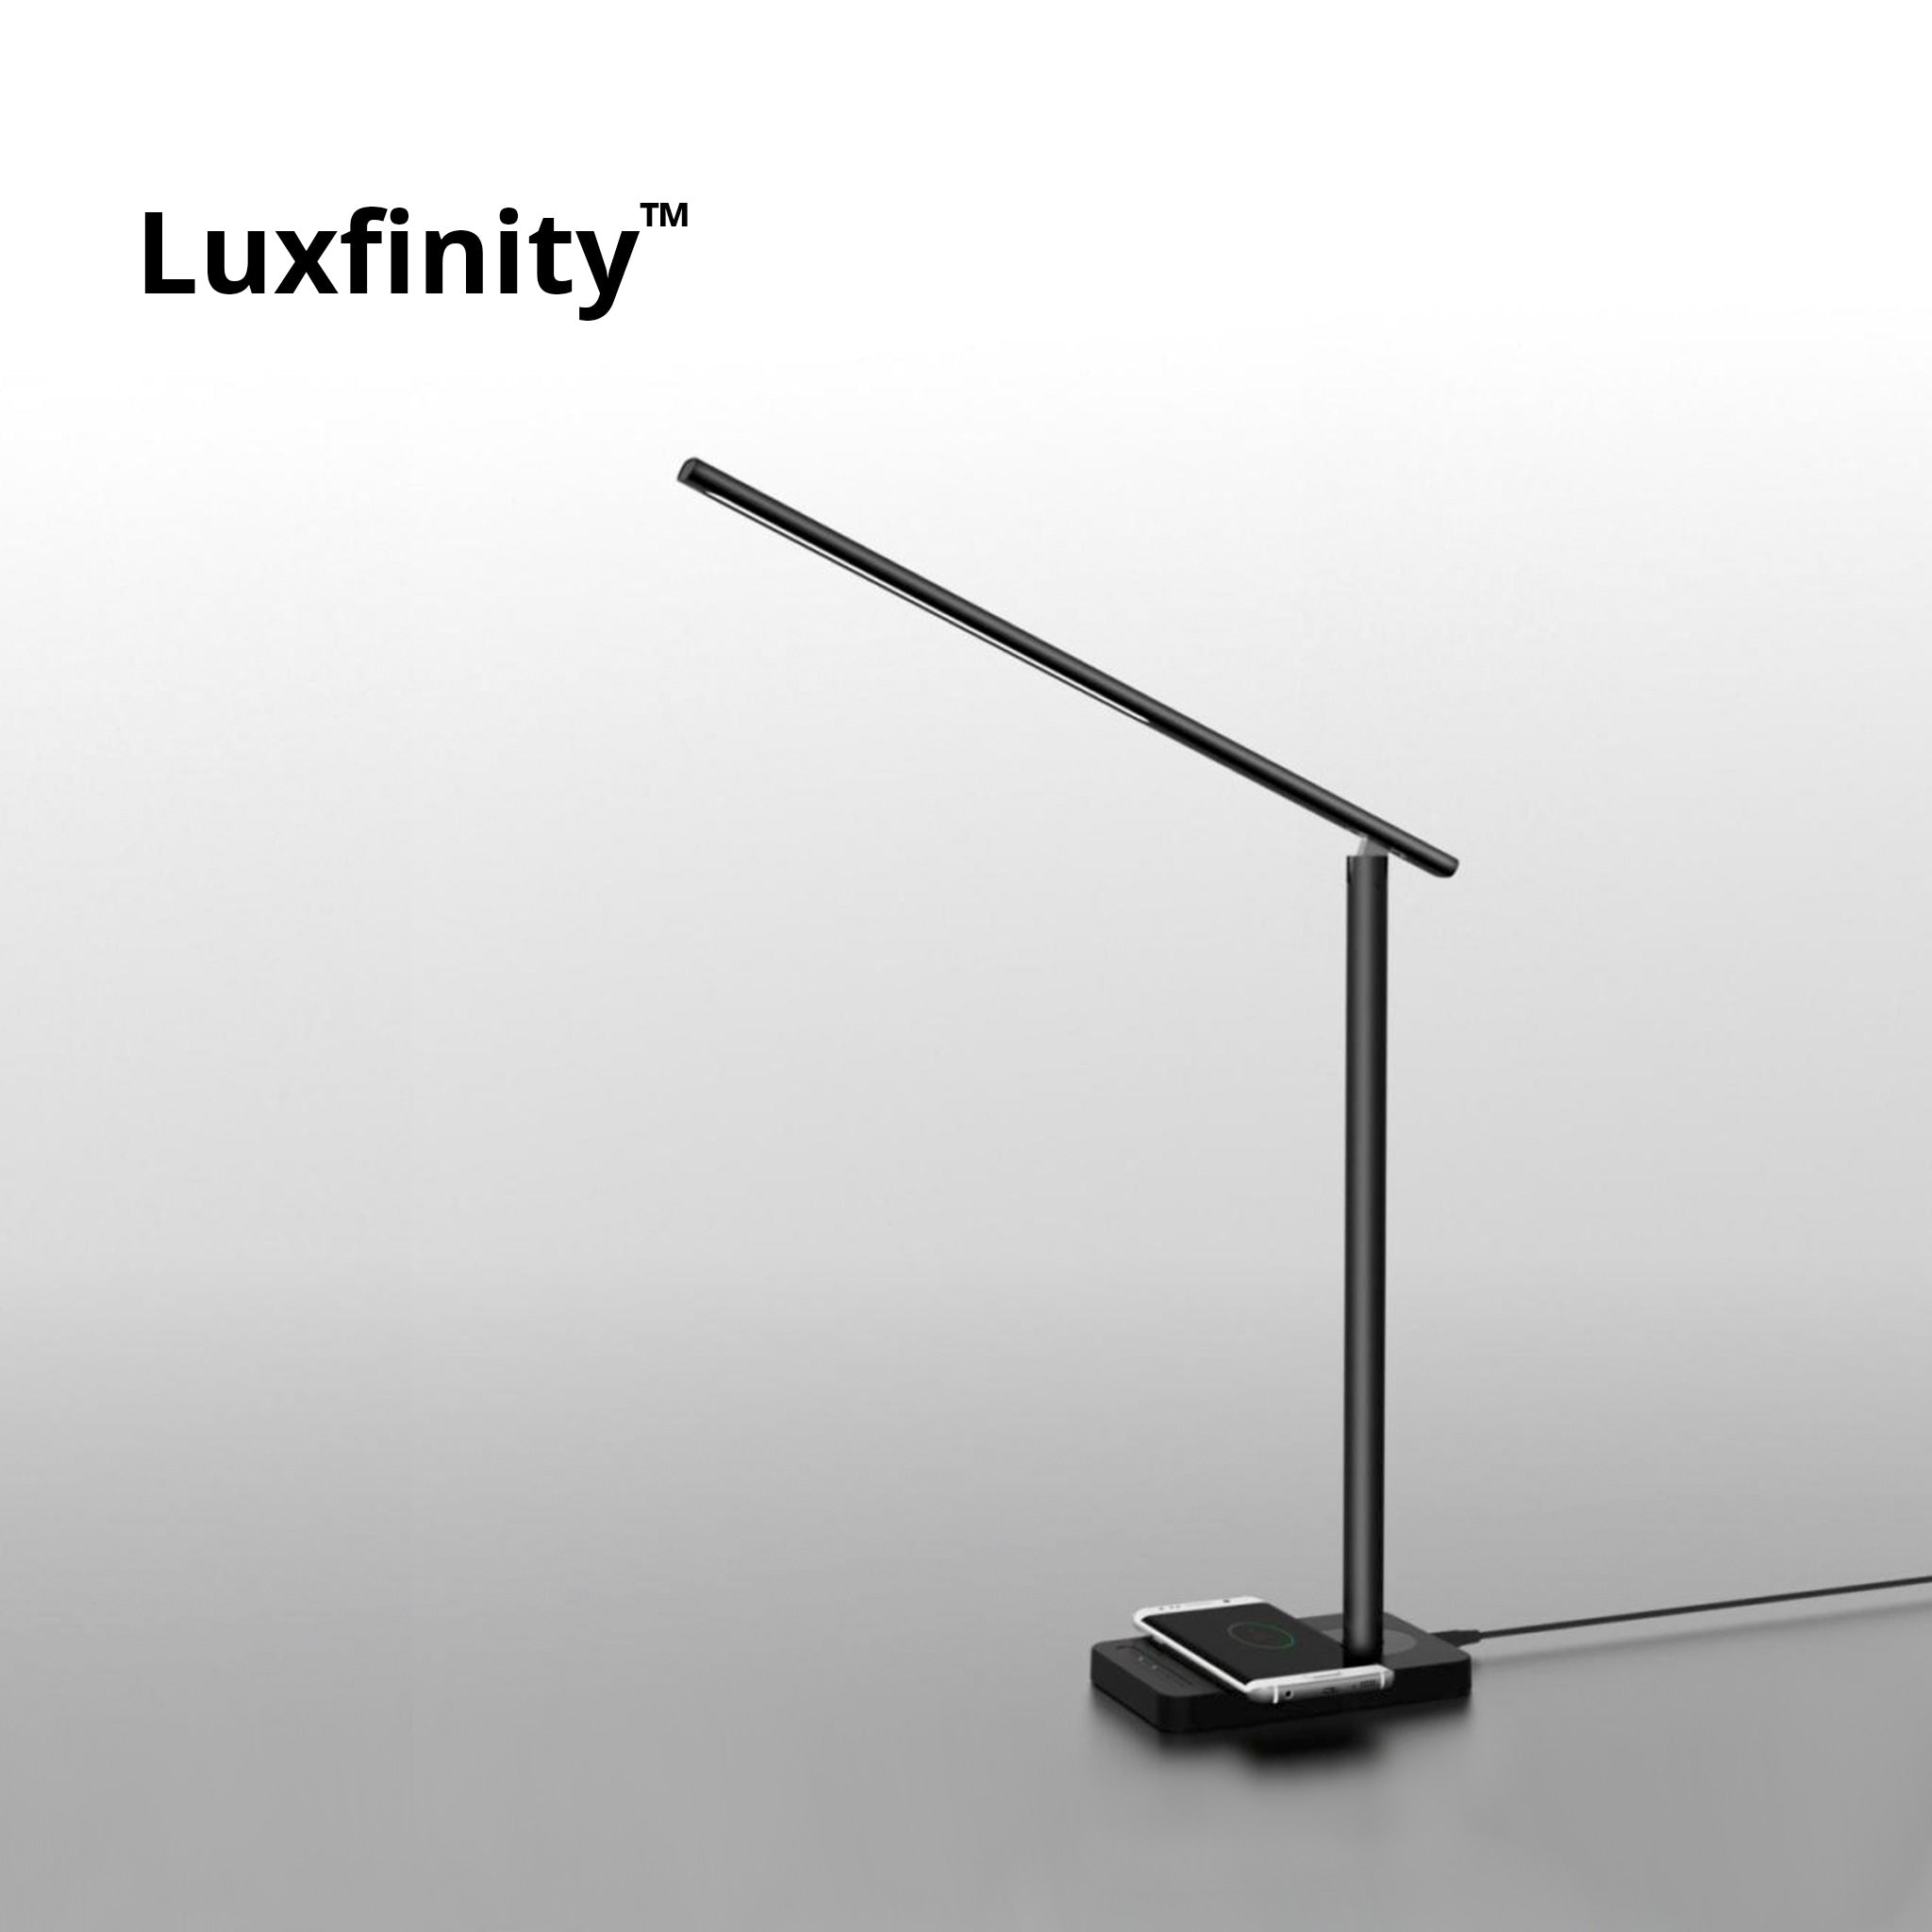 equo elx a dsk lamp com led desk konceptlamps sil product silver